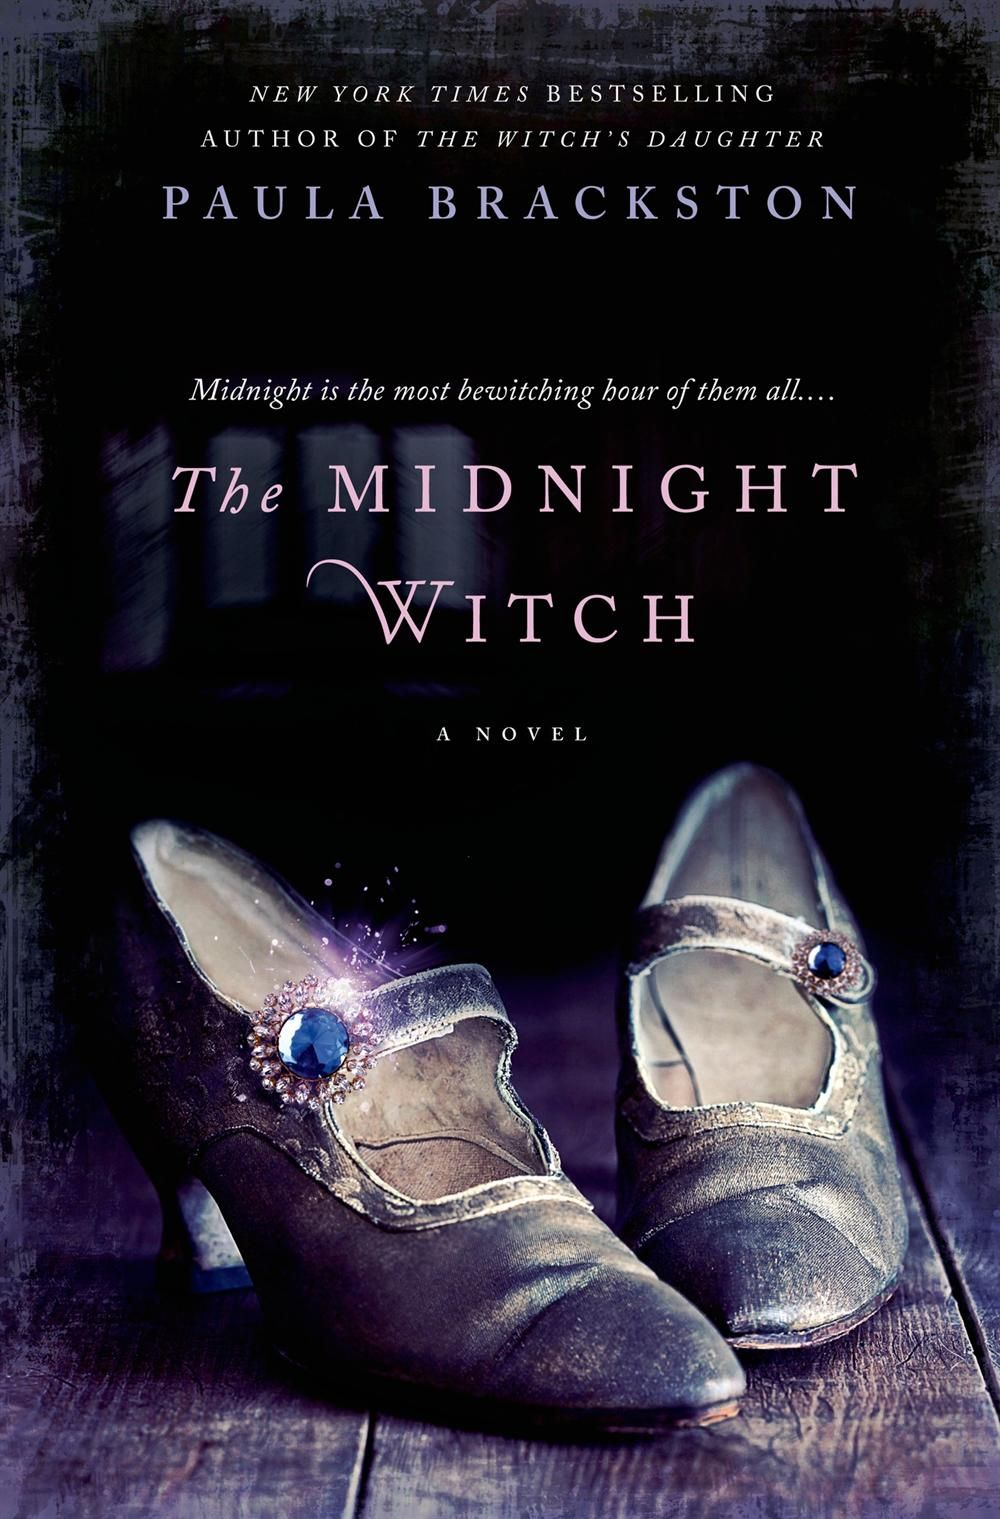 The midnight witch by paula brackston spanning the opulence of edwardian london and the